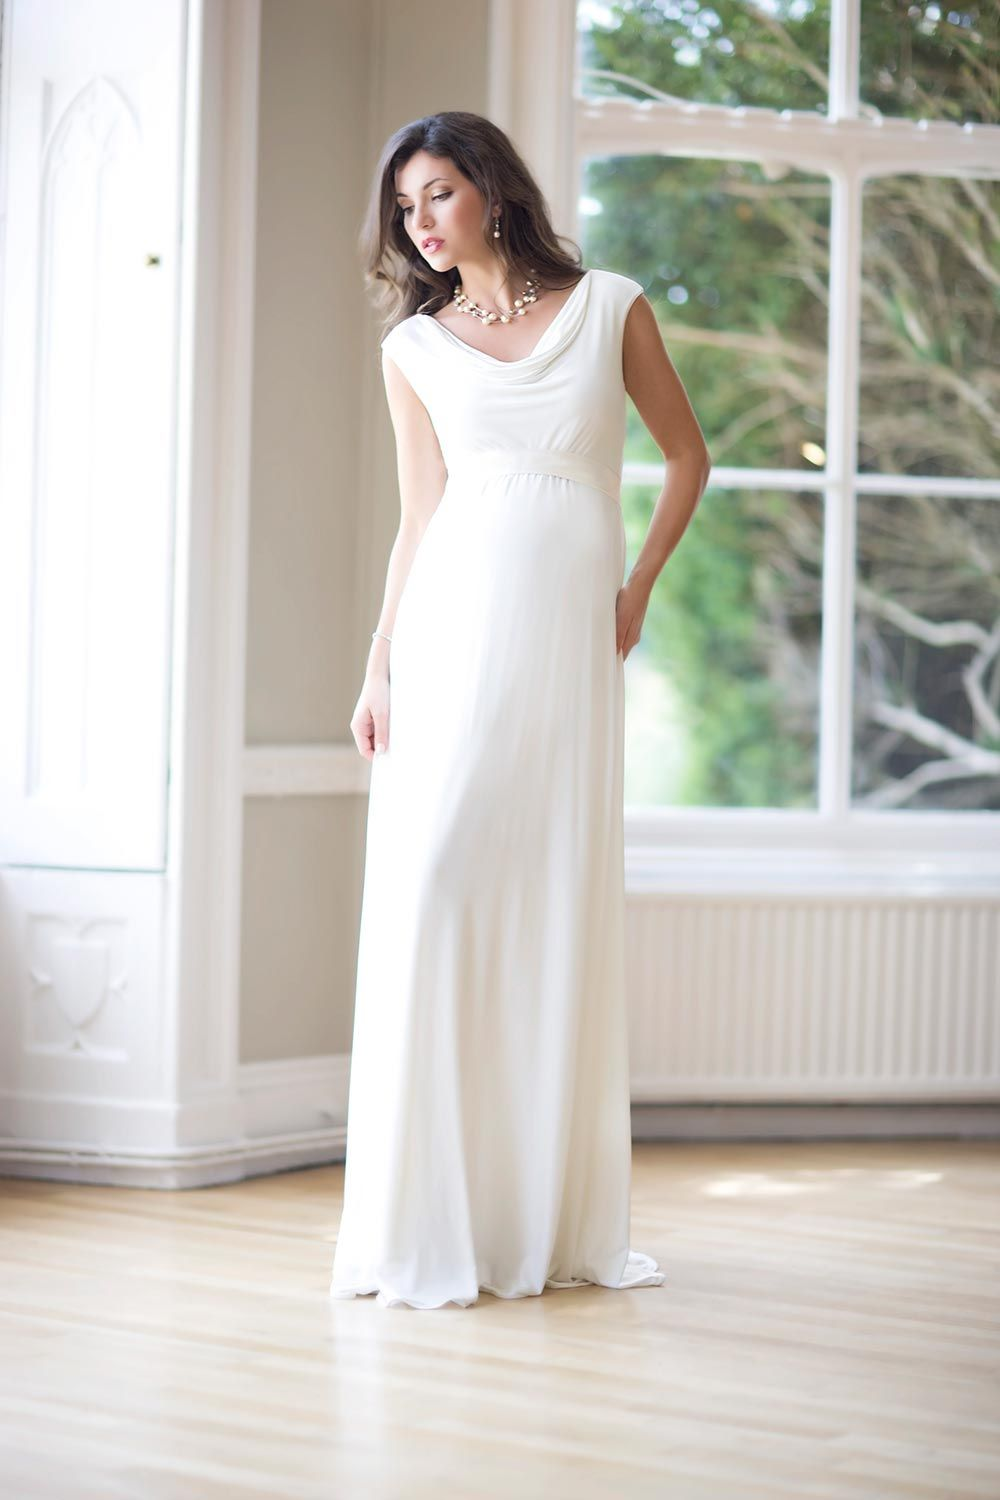 a8bfaeb916976 If you are looking for a dress that is elegant and timeless then the  Liberty dress could be the wedding gown for you.